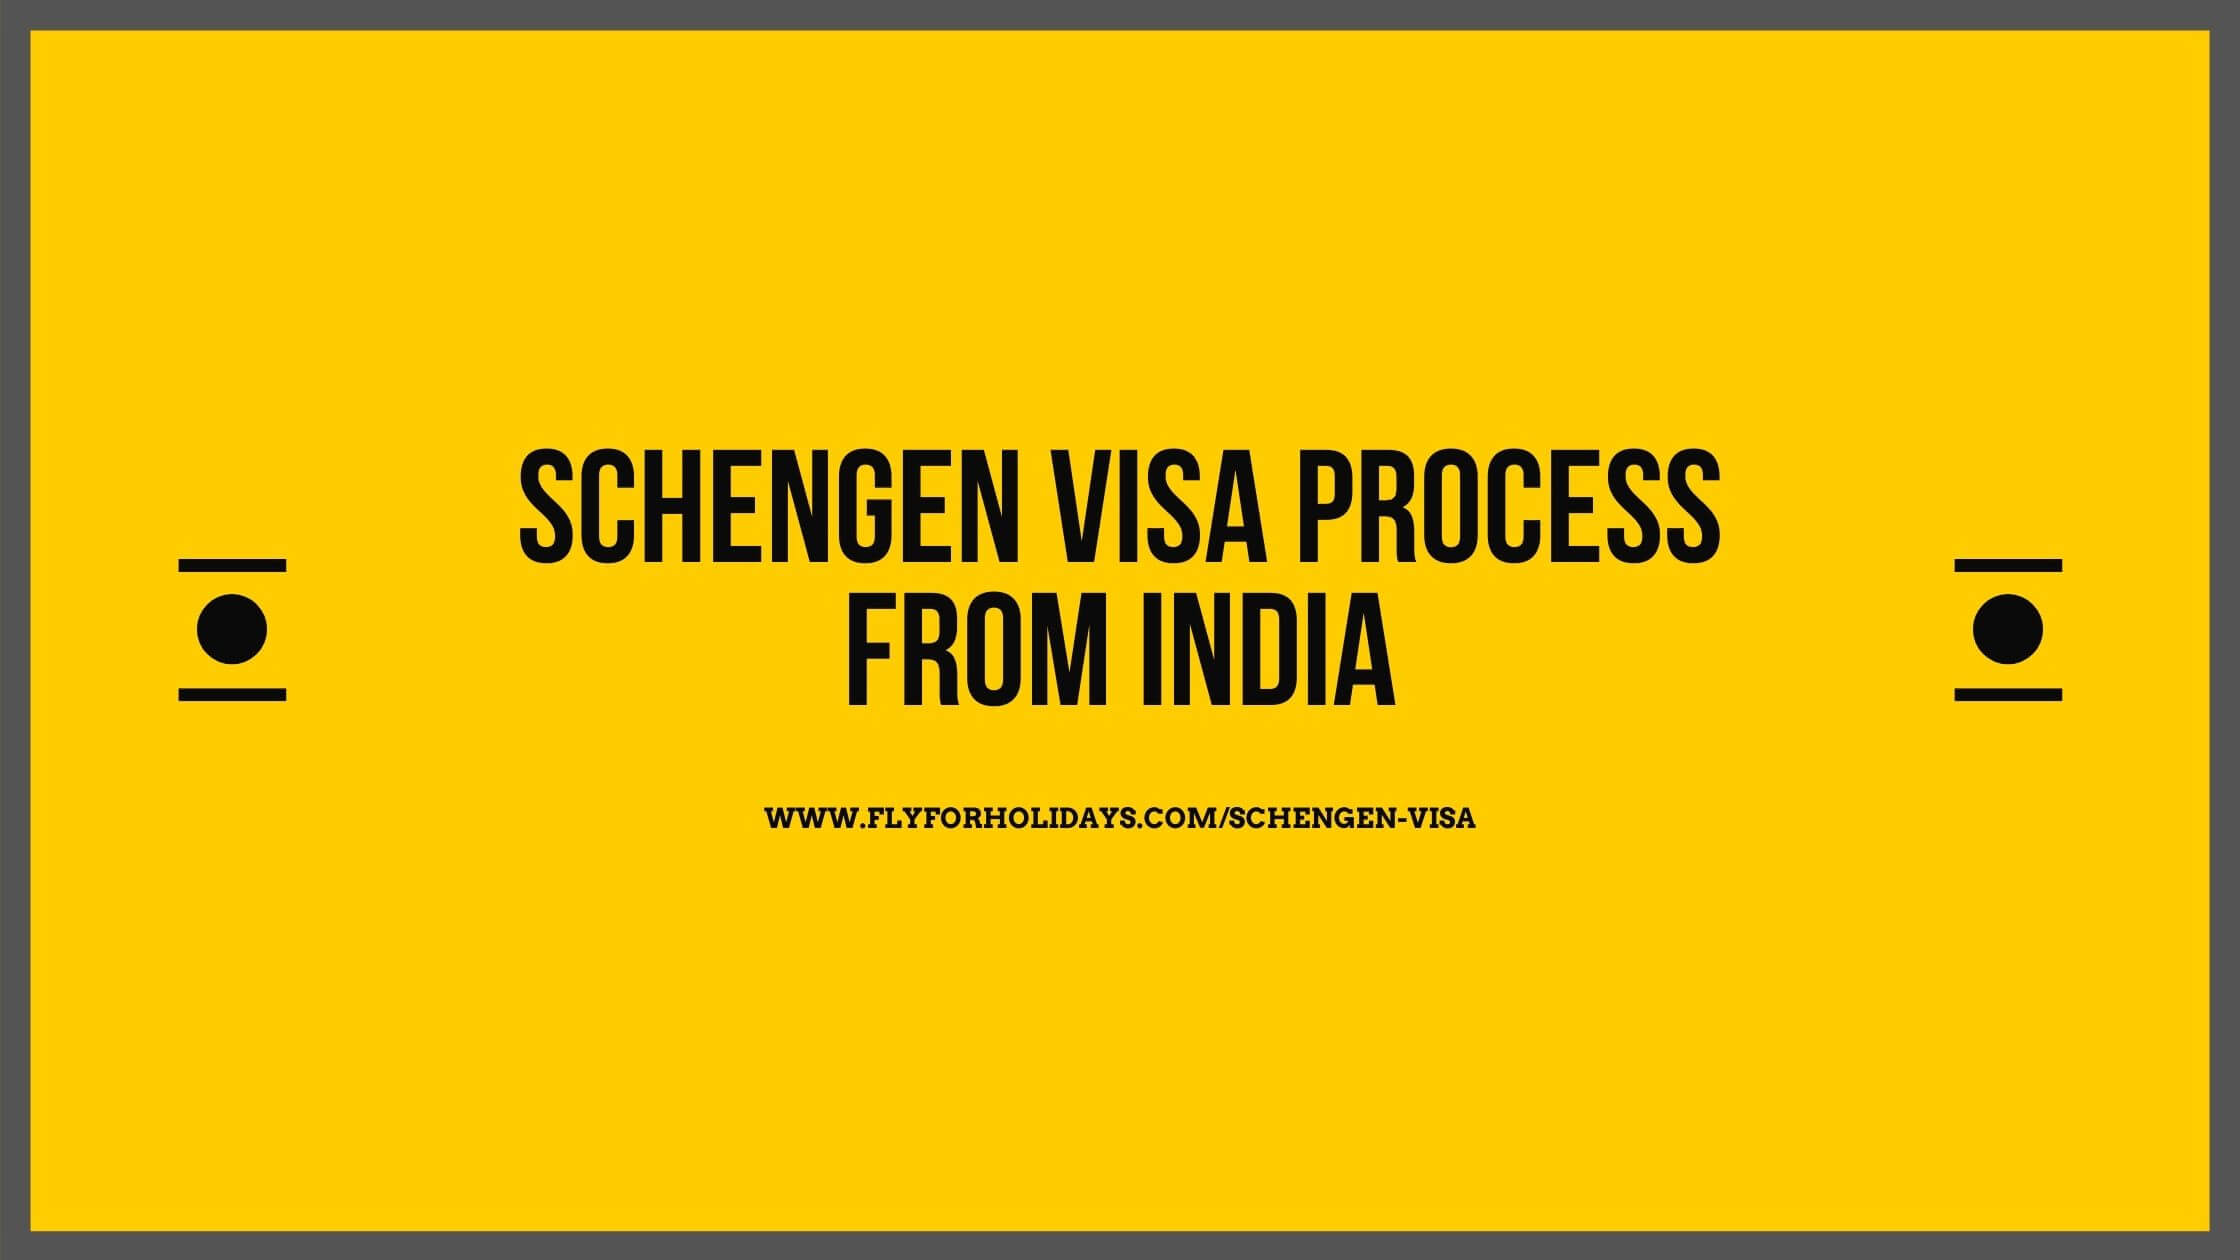 Schengen Visa Process From India - Fly For Holidays